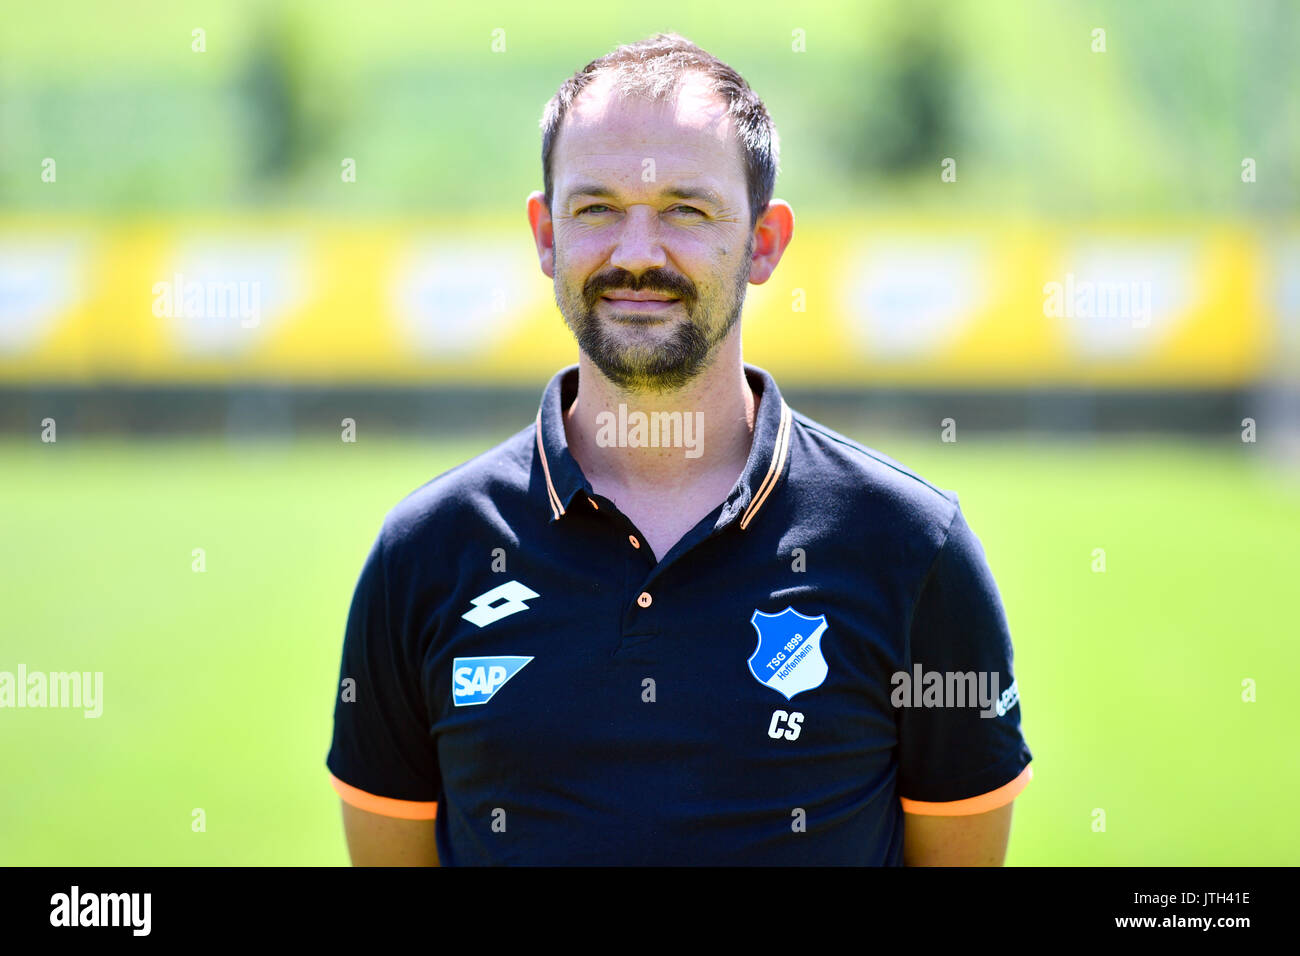 German Bundesliga, Photocall TSG 1899 Hoffenheim on 13 July 2017 in Zuzenhausen, Germany: Foto: kitman Christian Seyfert. Uwe Anspach/dpa | usage worldwide - Stock Image